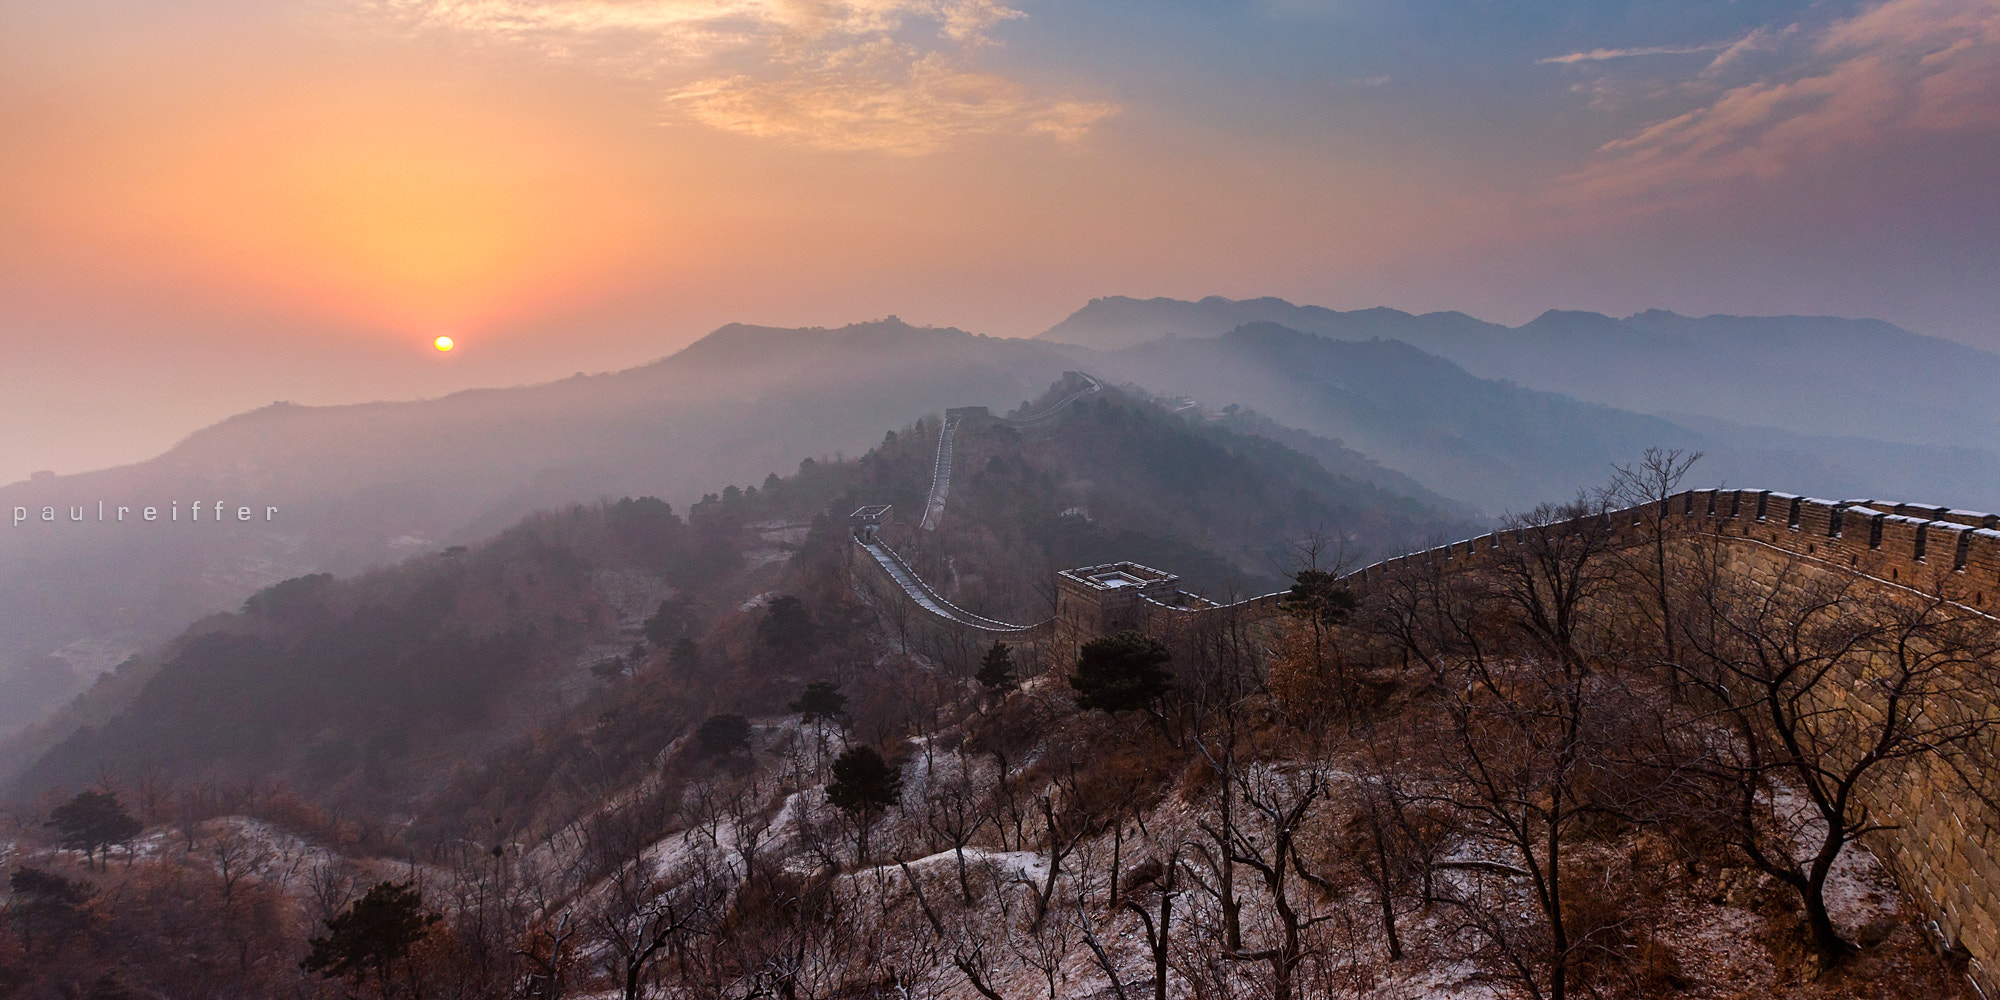 Photograph The Great Wall of China - Sunrise by Paul Reiffer on 500px